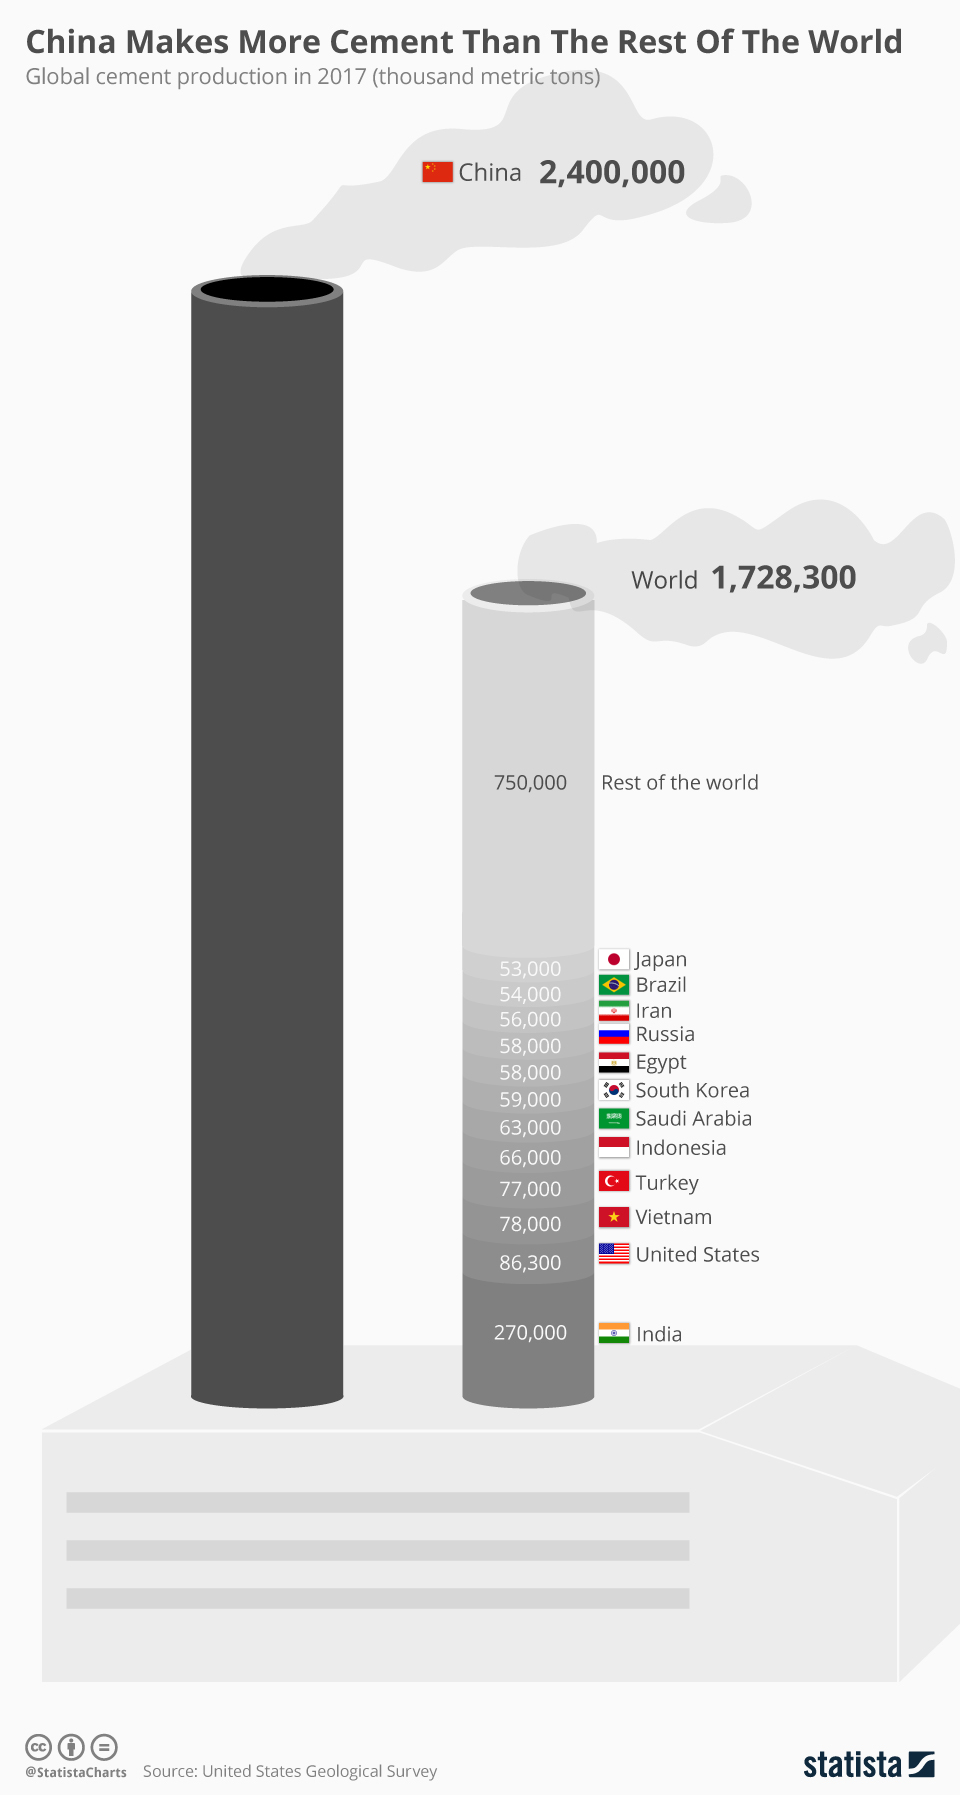 China Makes More Cement Than The Rest Of The World